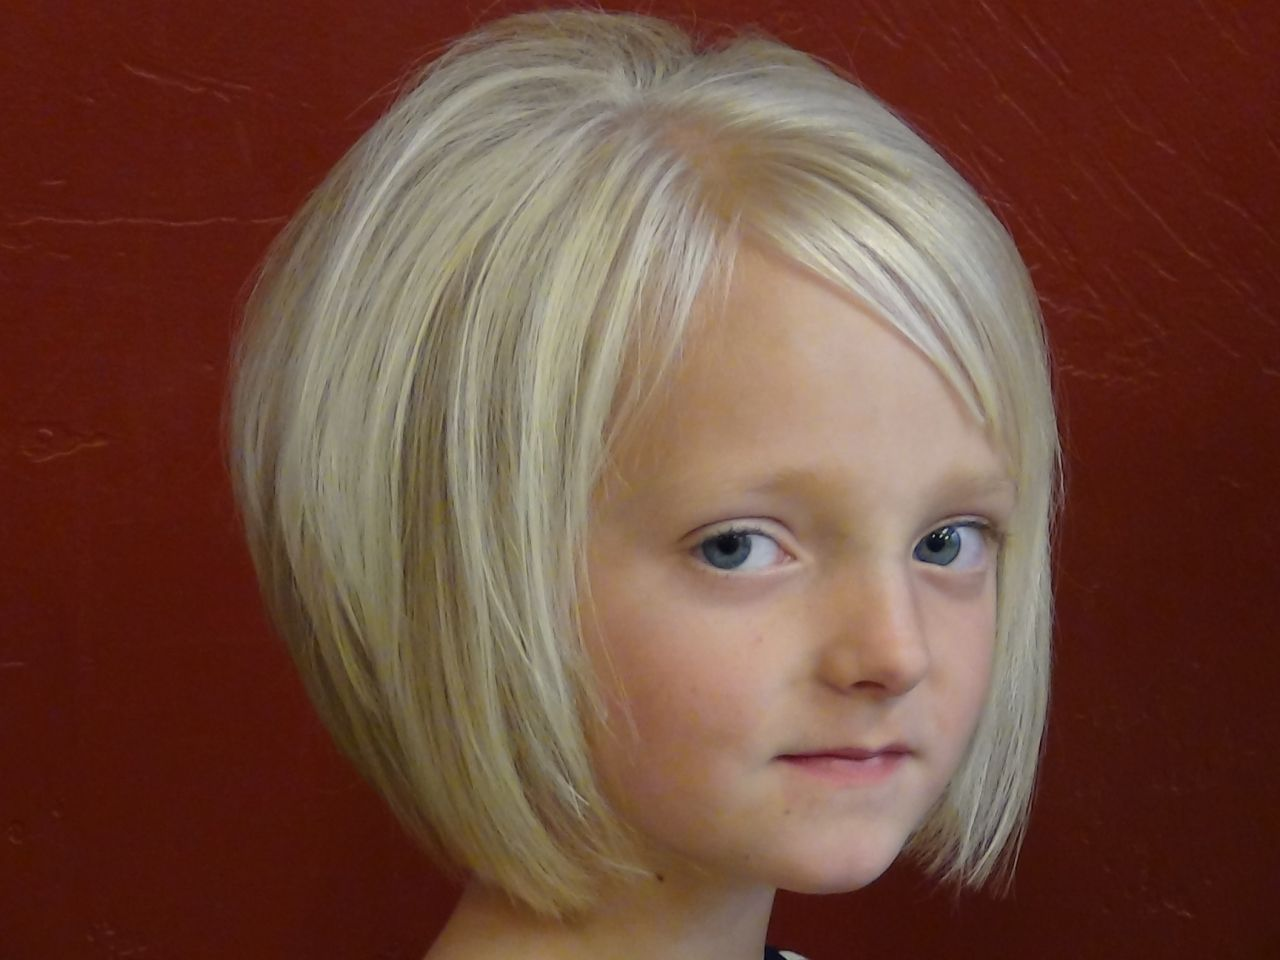 Awe Inspiring 1000 Images About Kids Hair Cuts On Pinterest Little Girl Bob Hairstyles For Women Draintrainus